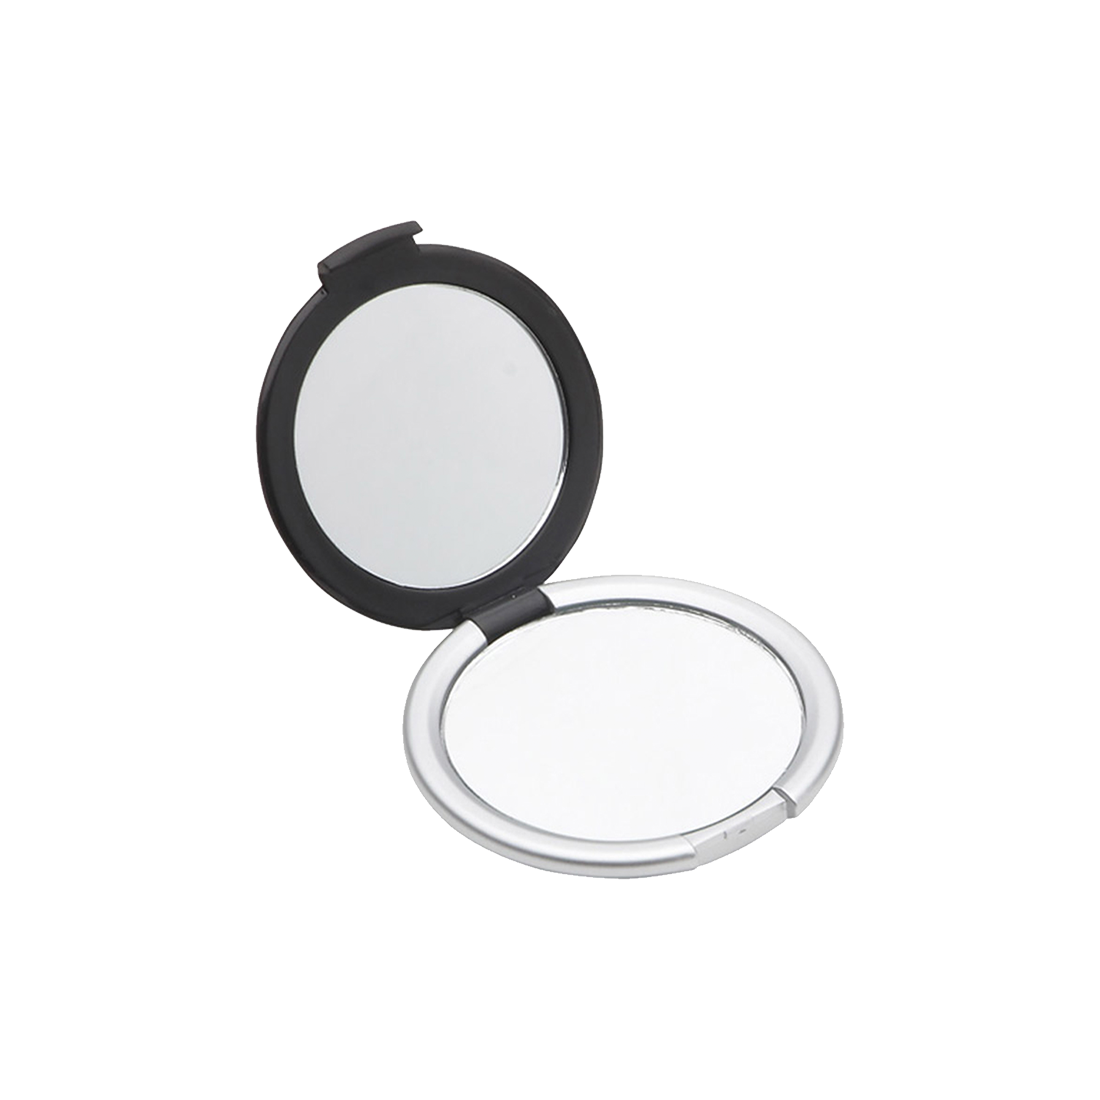 MAKEUP SUNSHINE COMPACT MIRROR